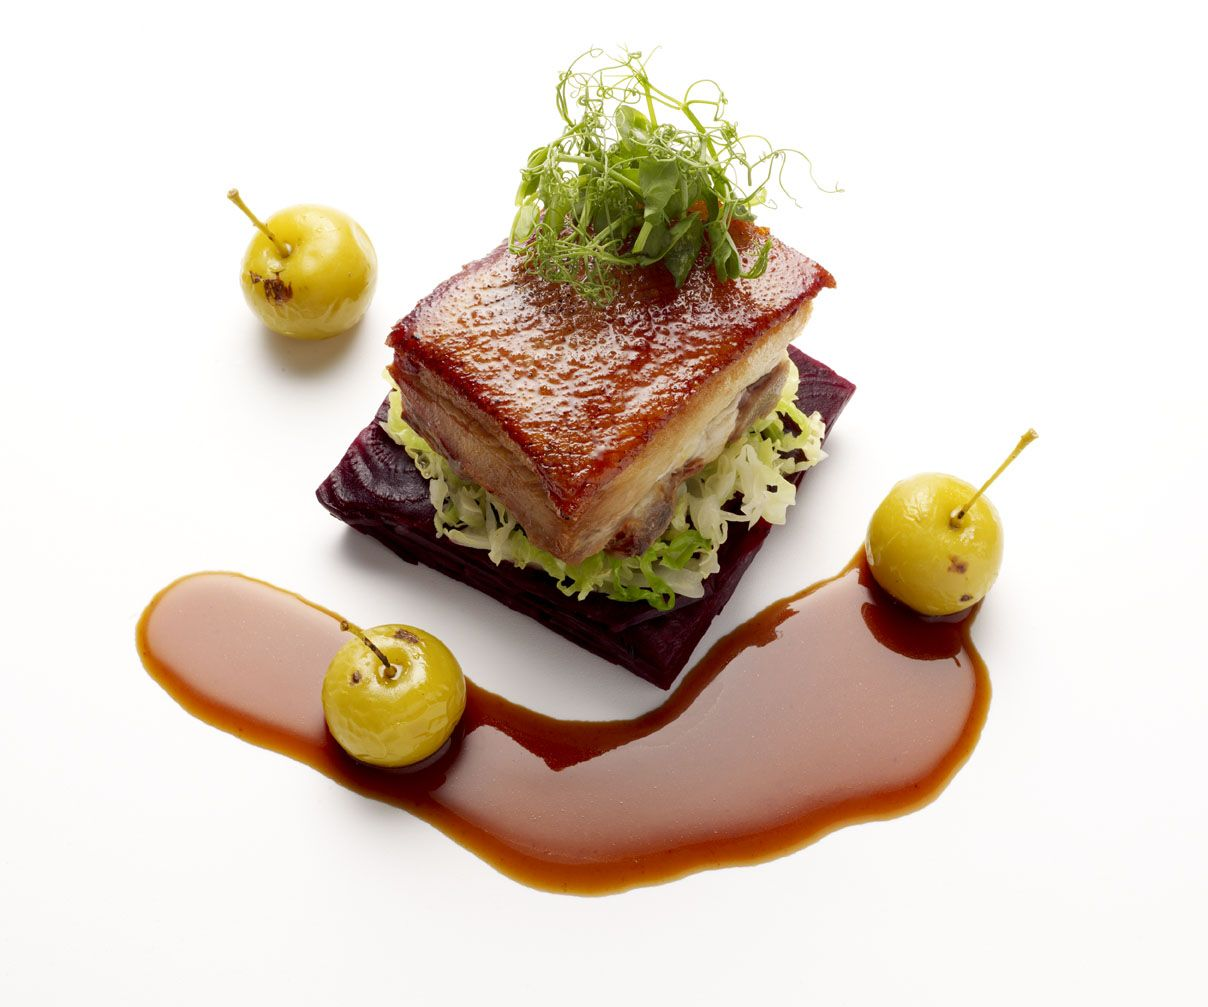 Inconnu chef pork belly food plating signature for Art de cuisine plates